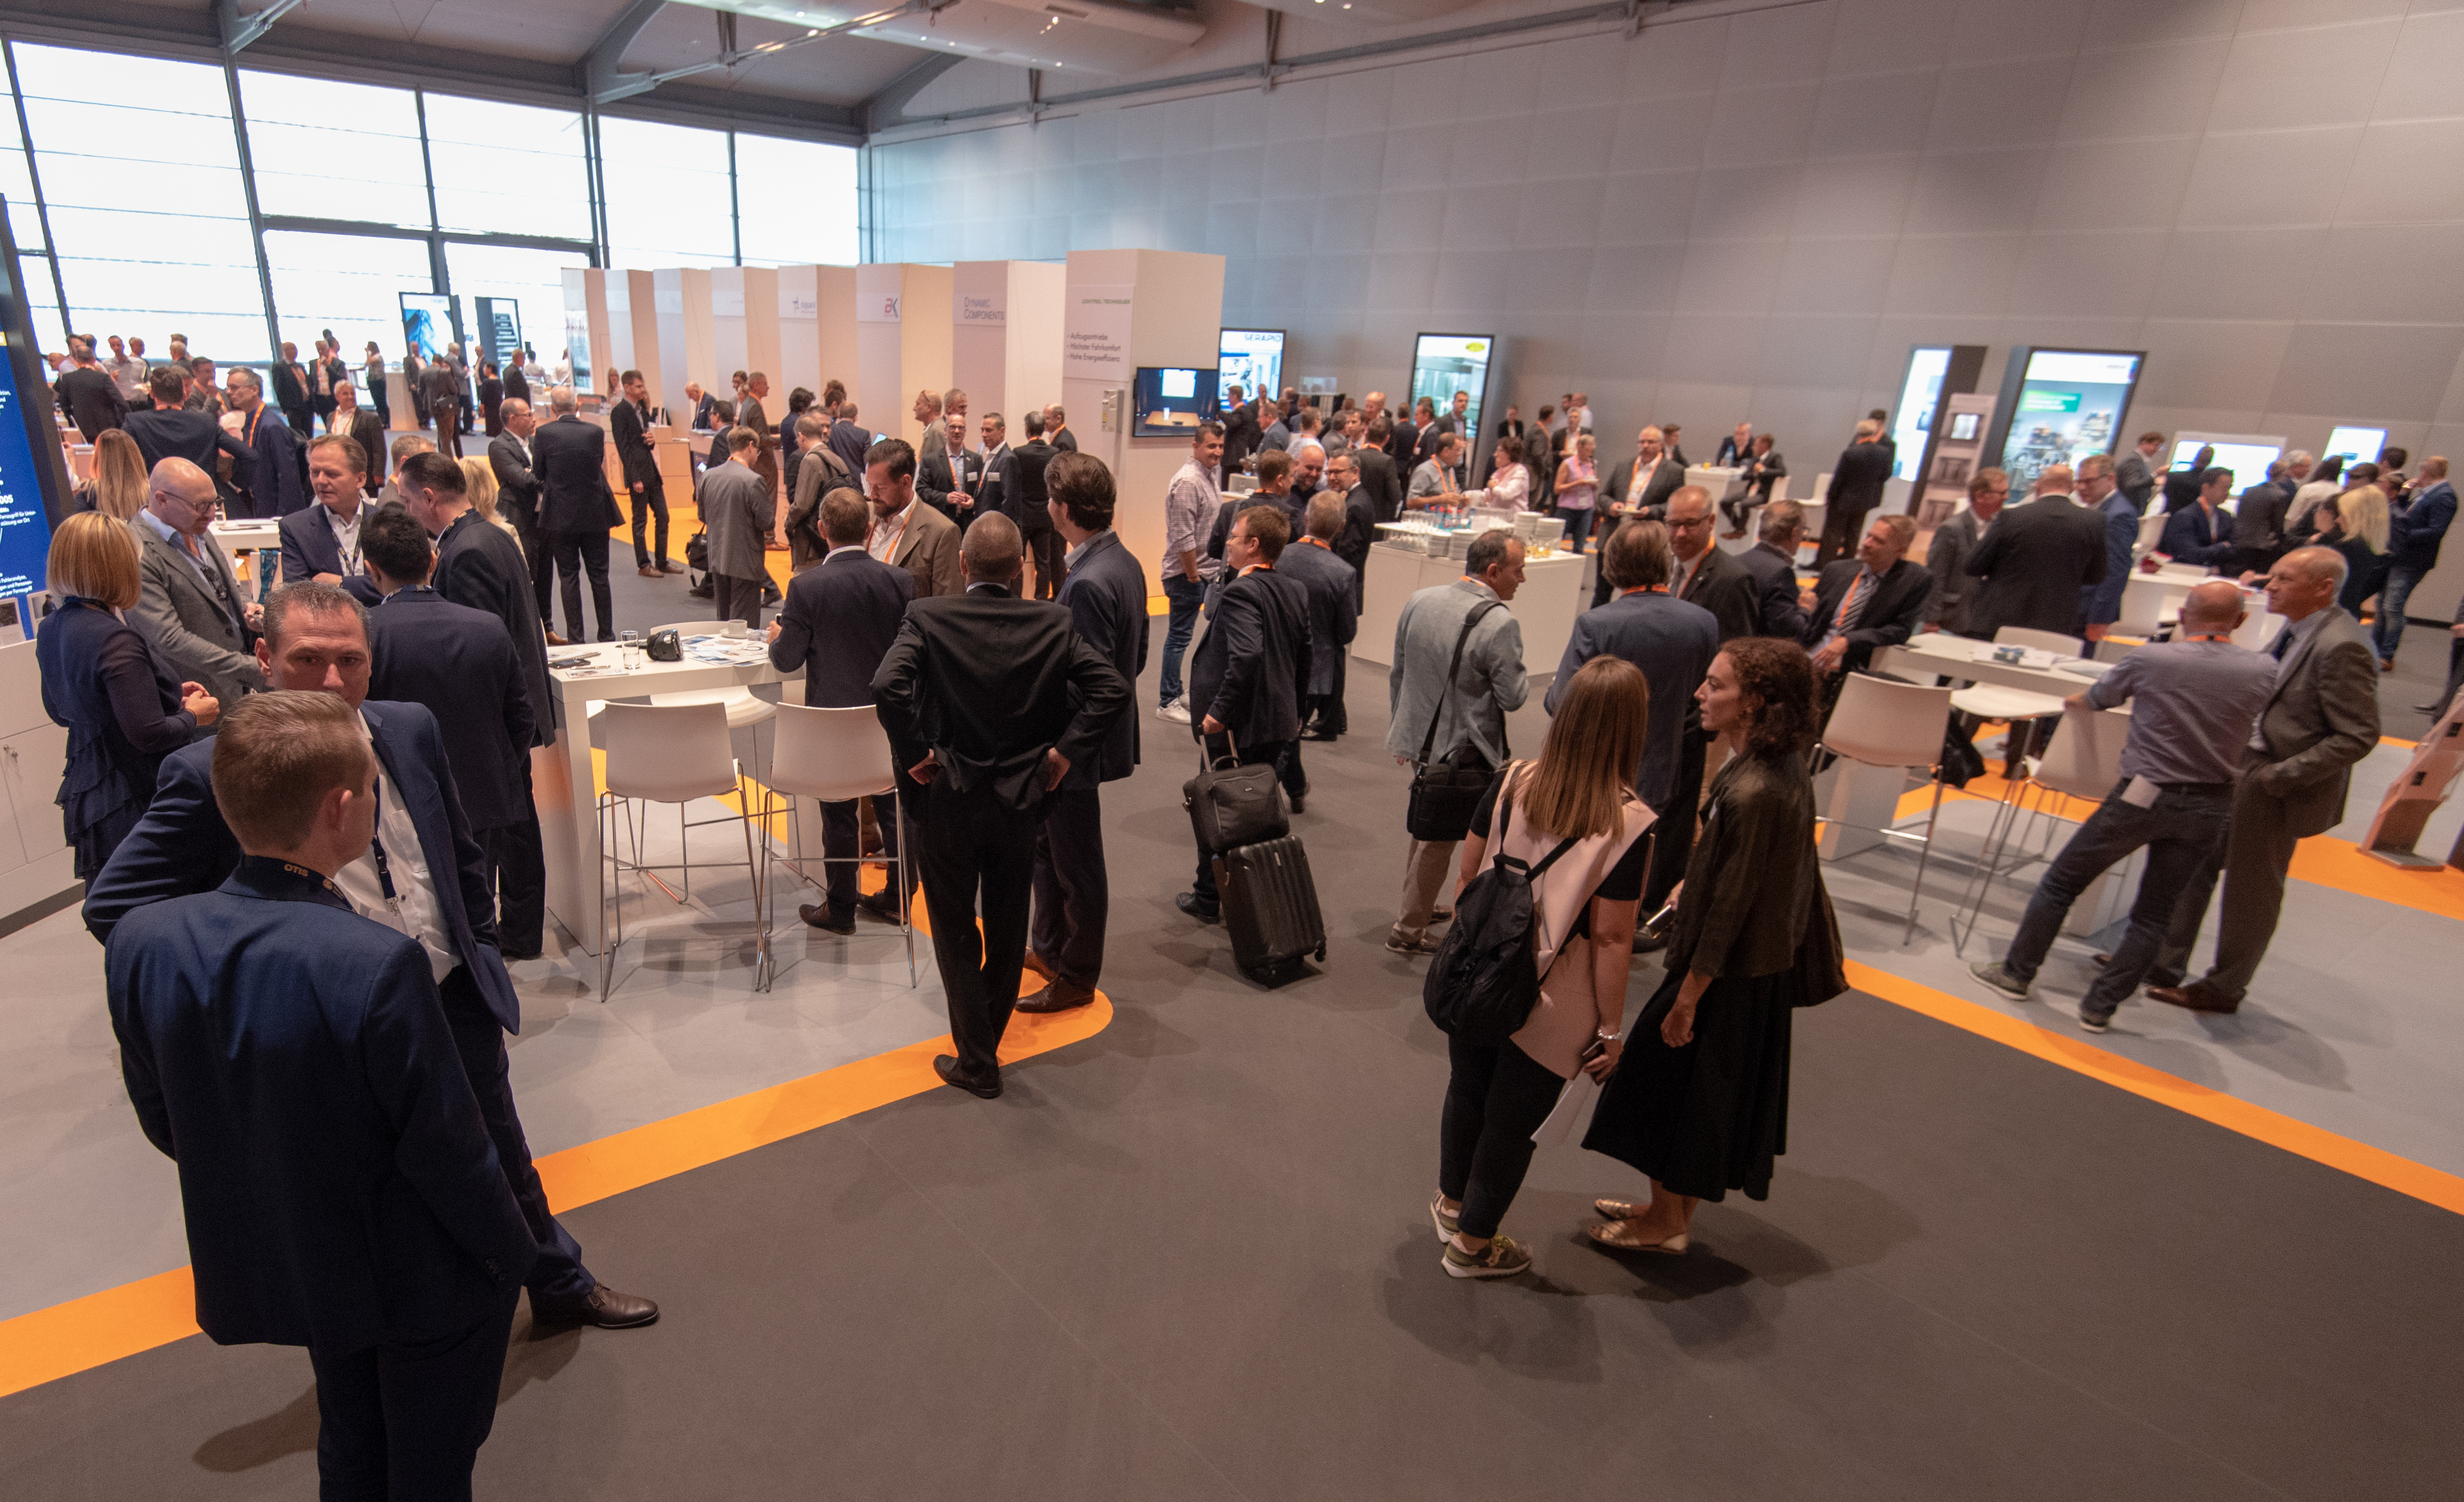 E2 Forum Frankfurt: the conference and exhibition generated great interest and were the setting for intensive networking.